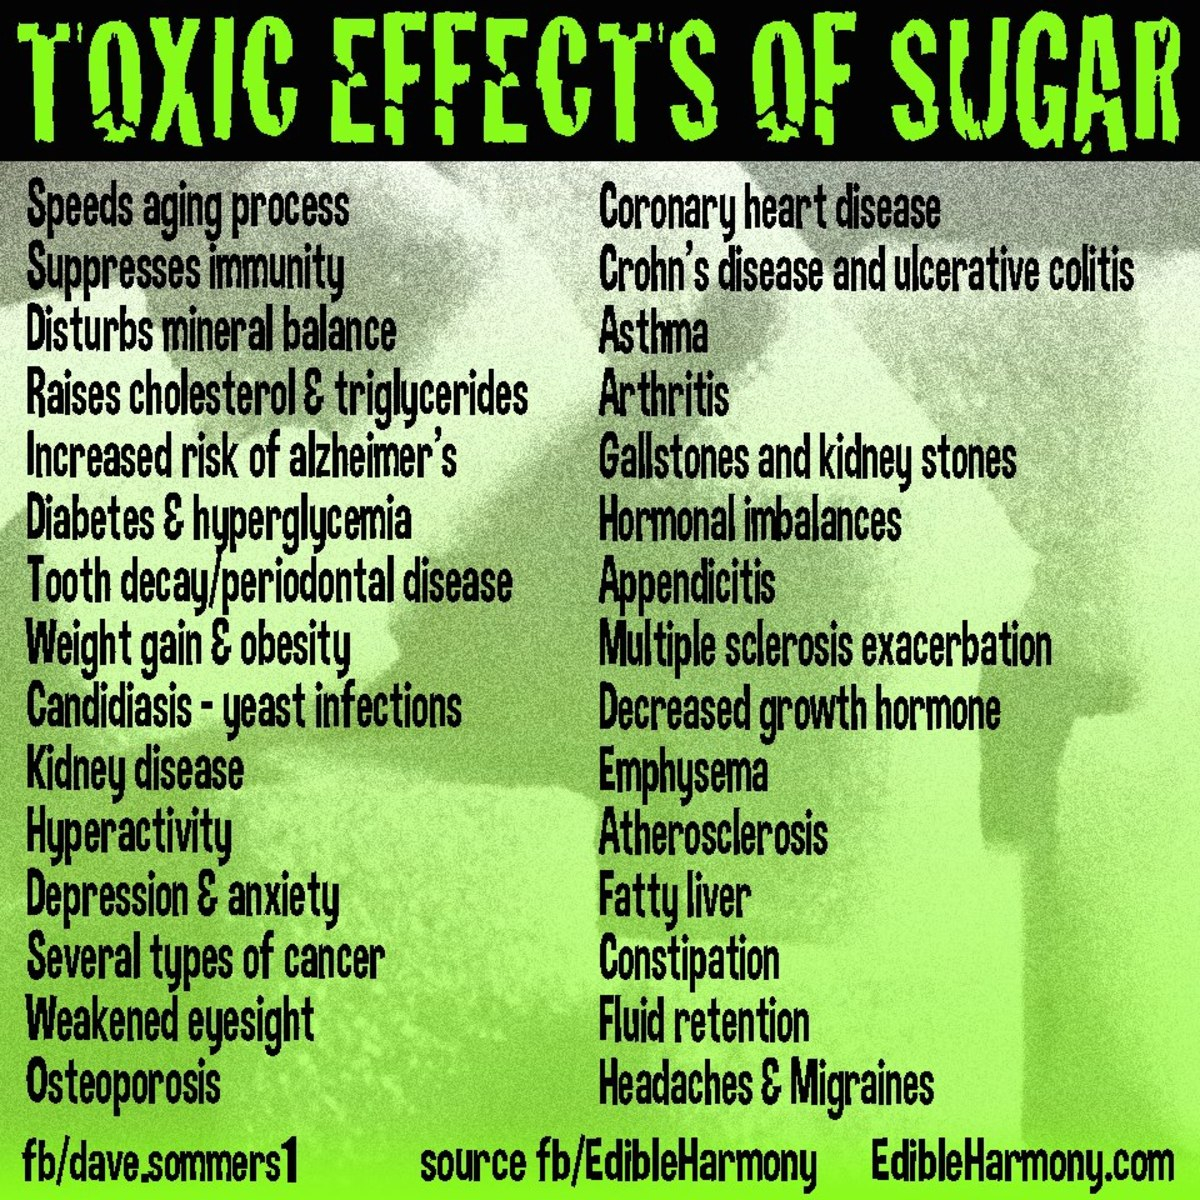 The Harmful Effects of Sugar on the Human Body